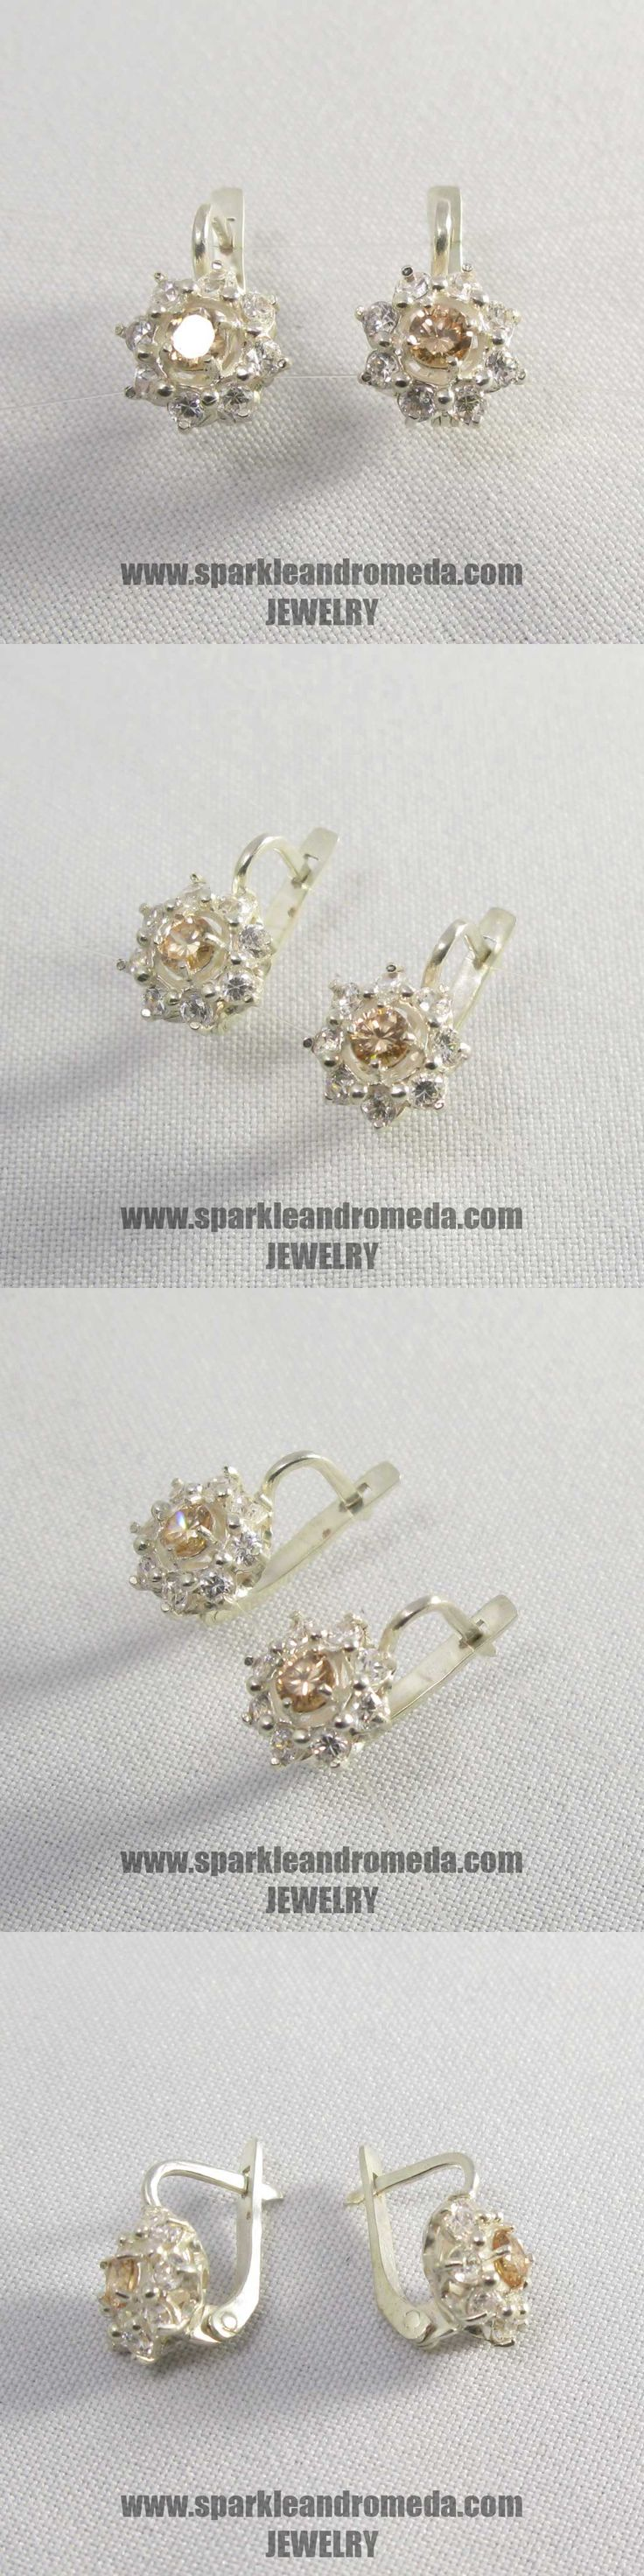 Sterling 925 silver earrings with 2 round 4 mm golden beryl color and 16 round 2,5 mm white color cubic zirconia gemstones.